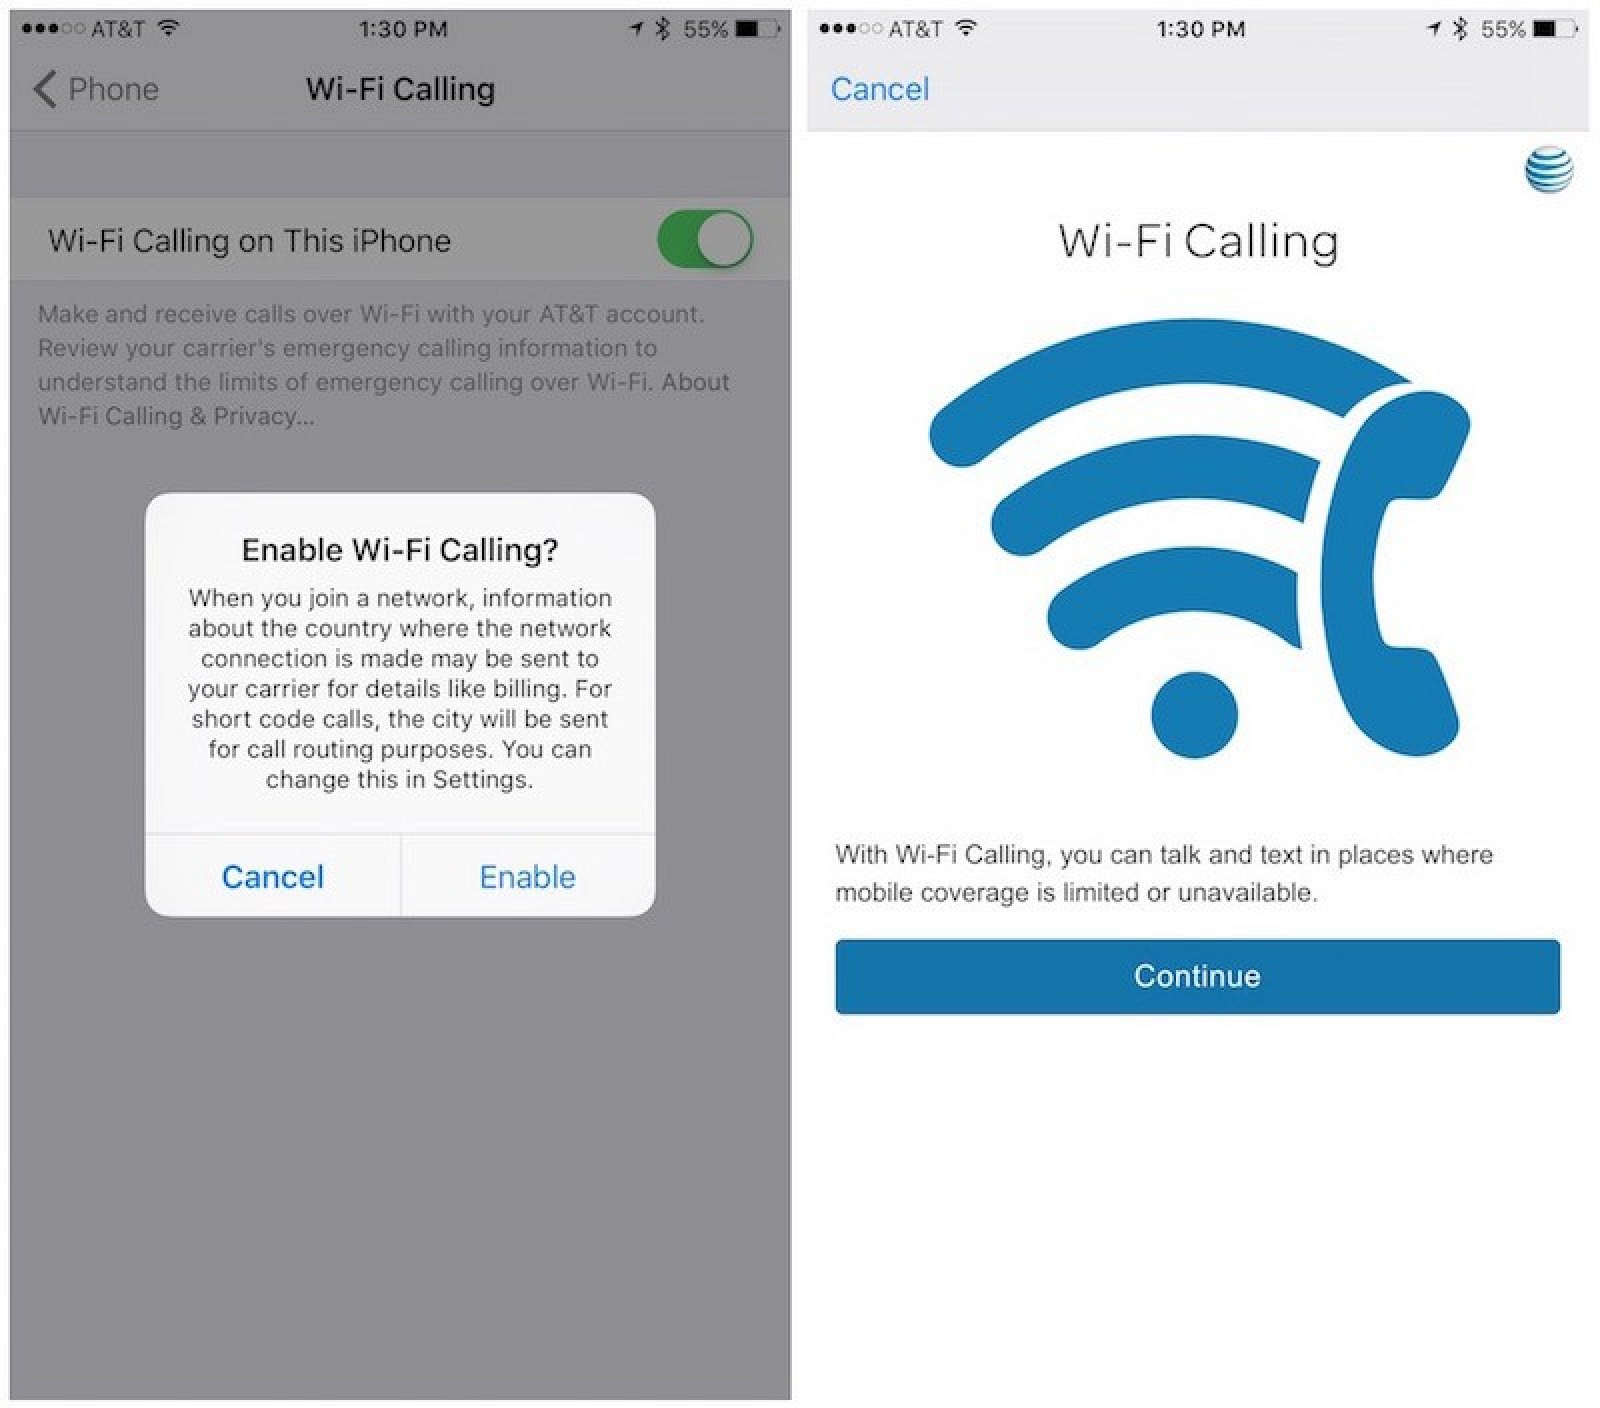 Wi Fi Calling Now Available For Att Users Macrumors Phone Internet Wiring Diagram